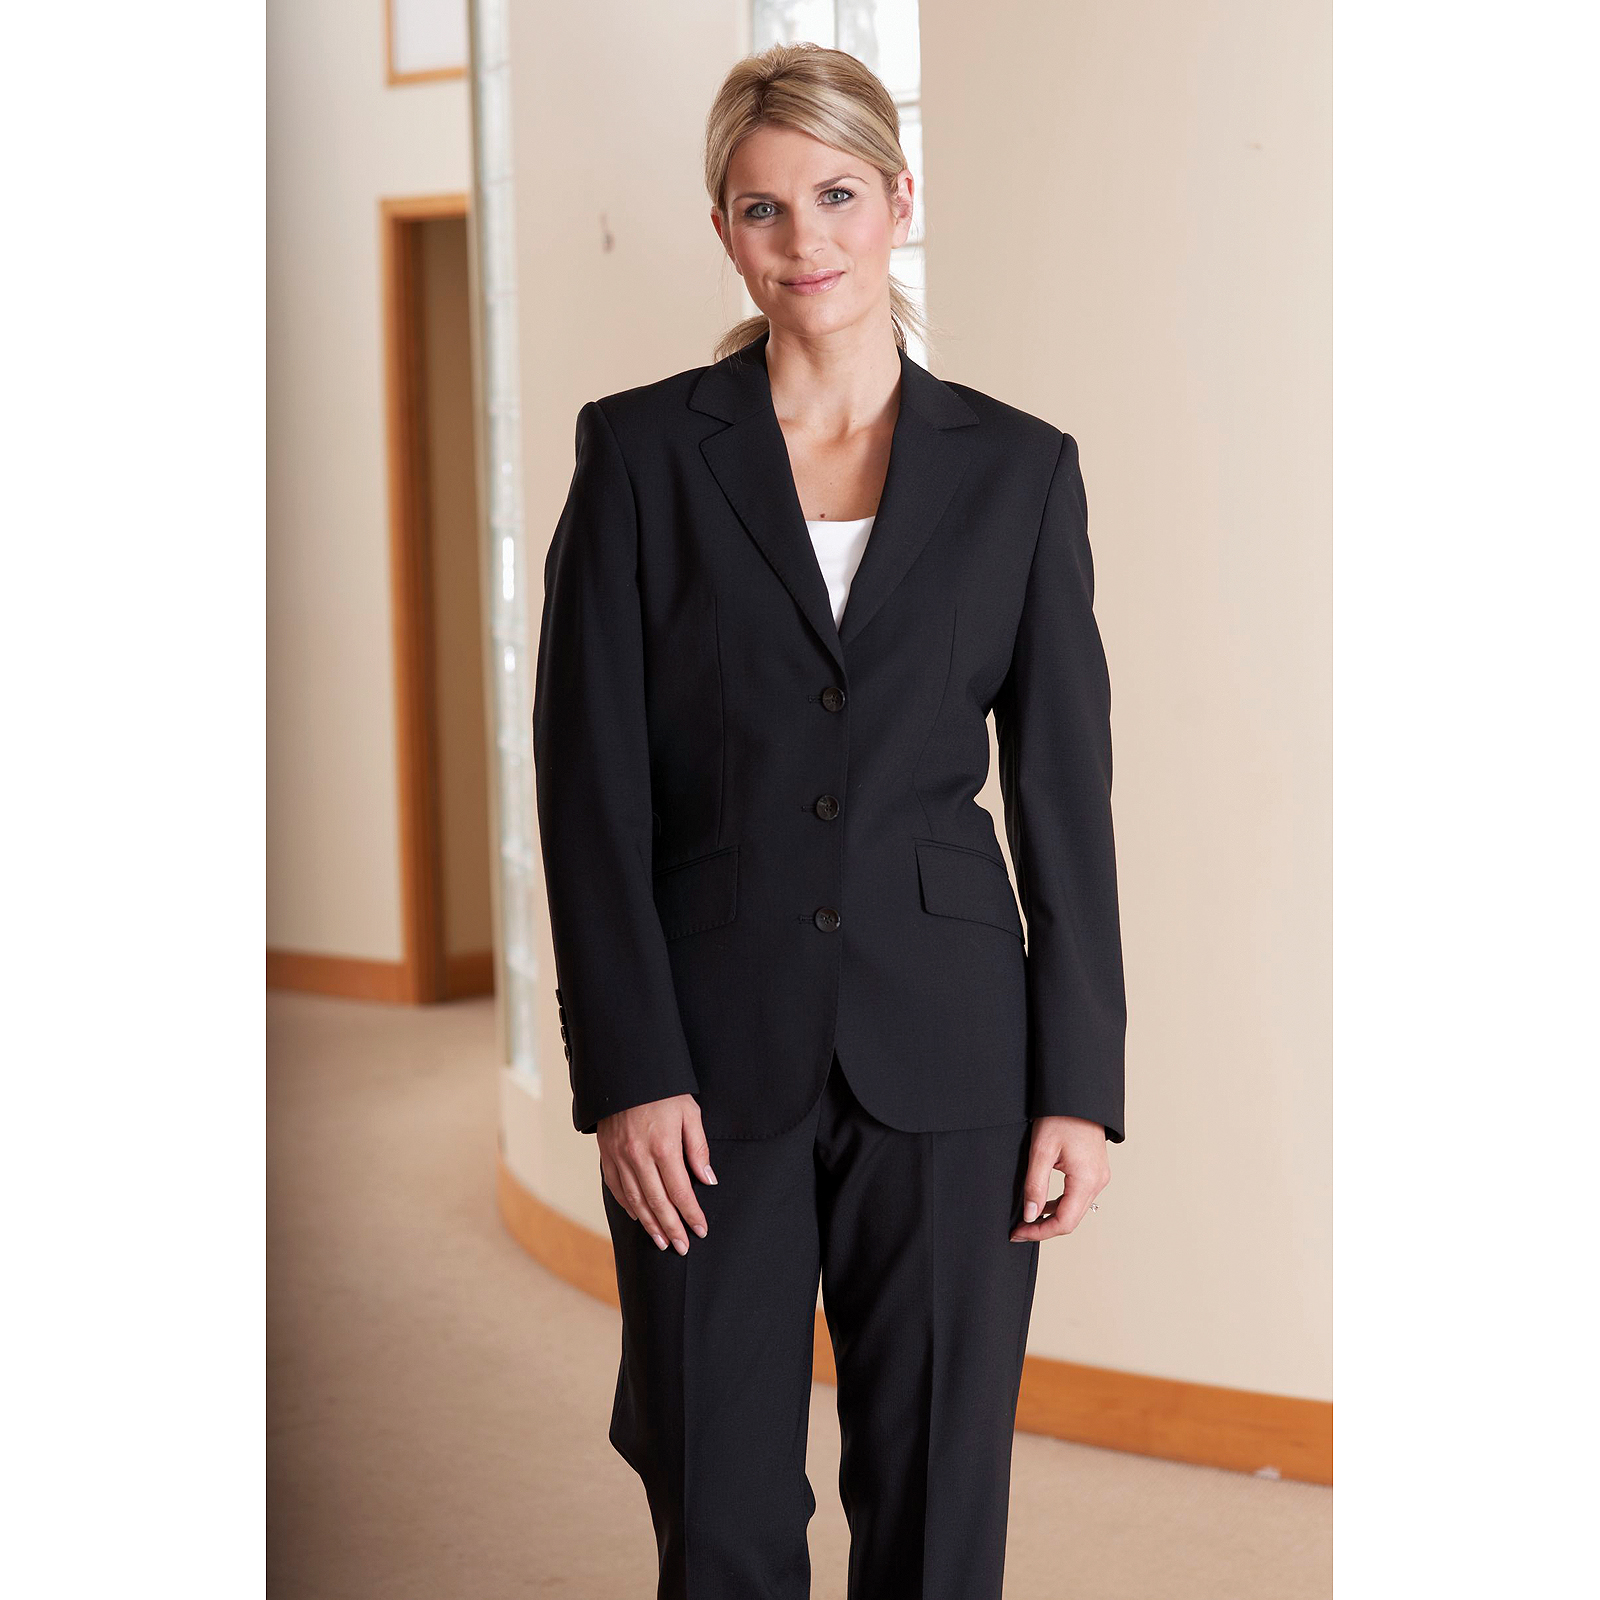 Skopes Juliette Jacket Women Las Formal Business Office